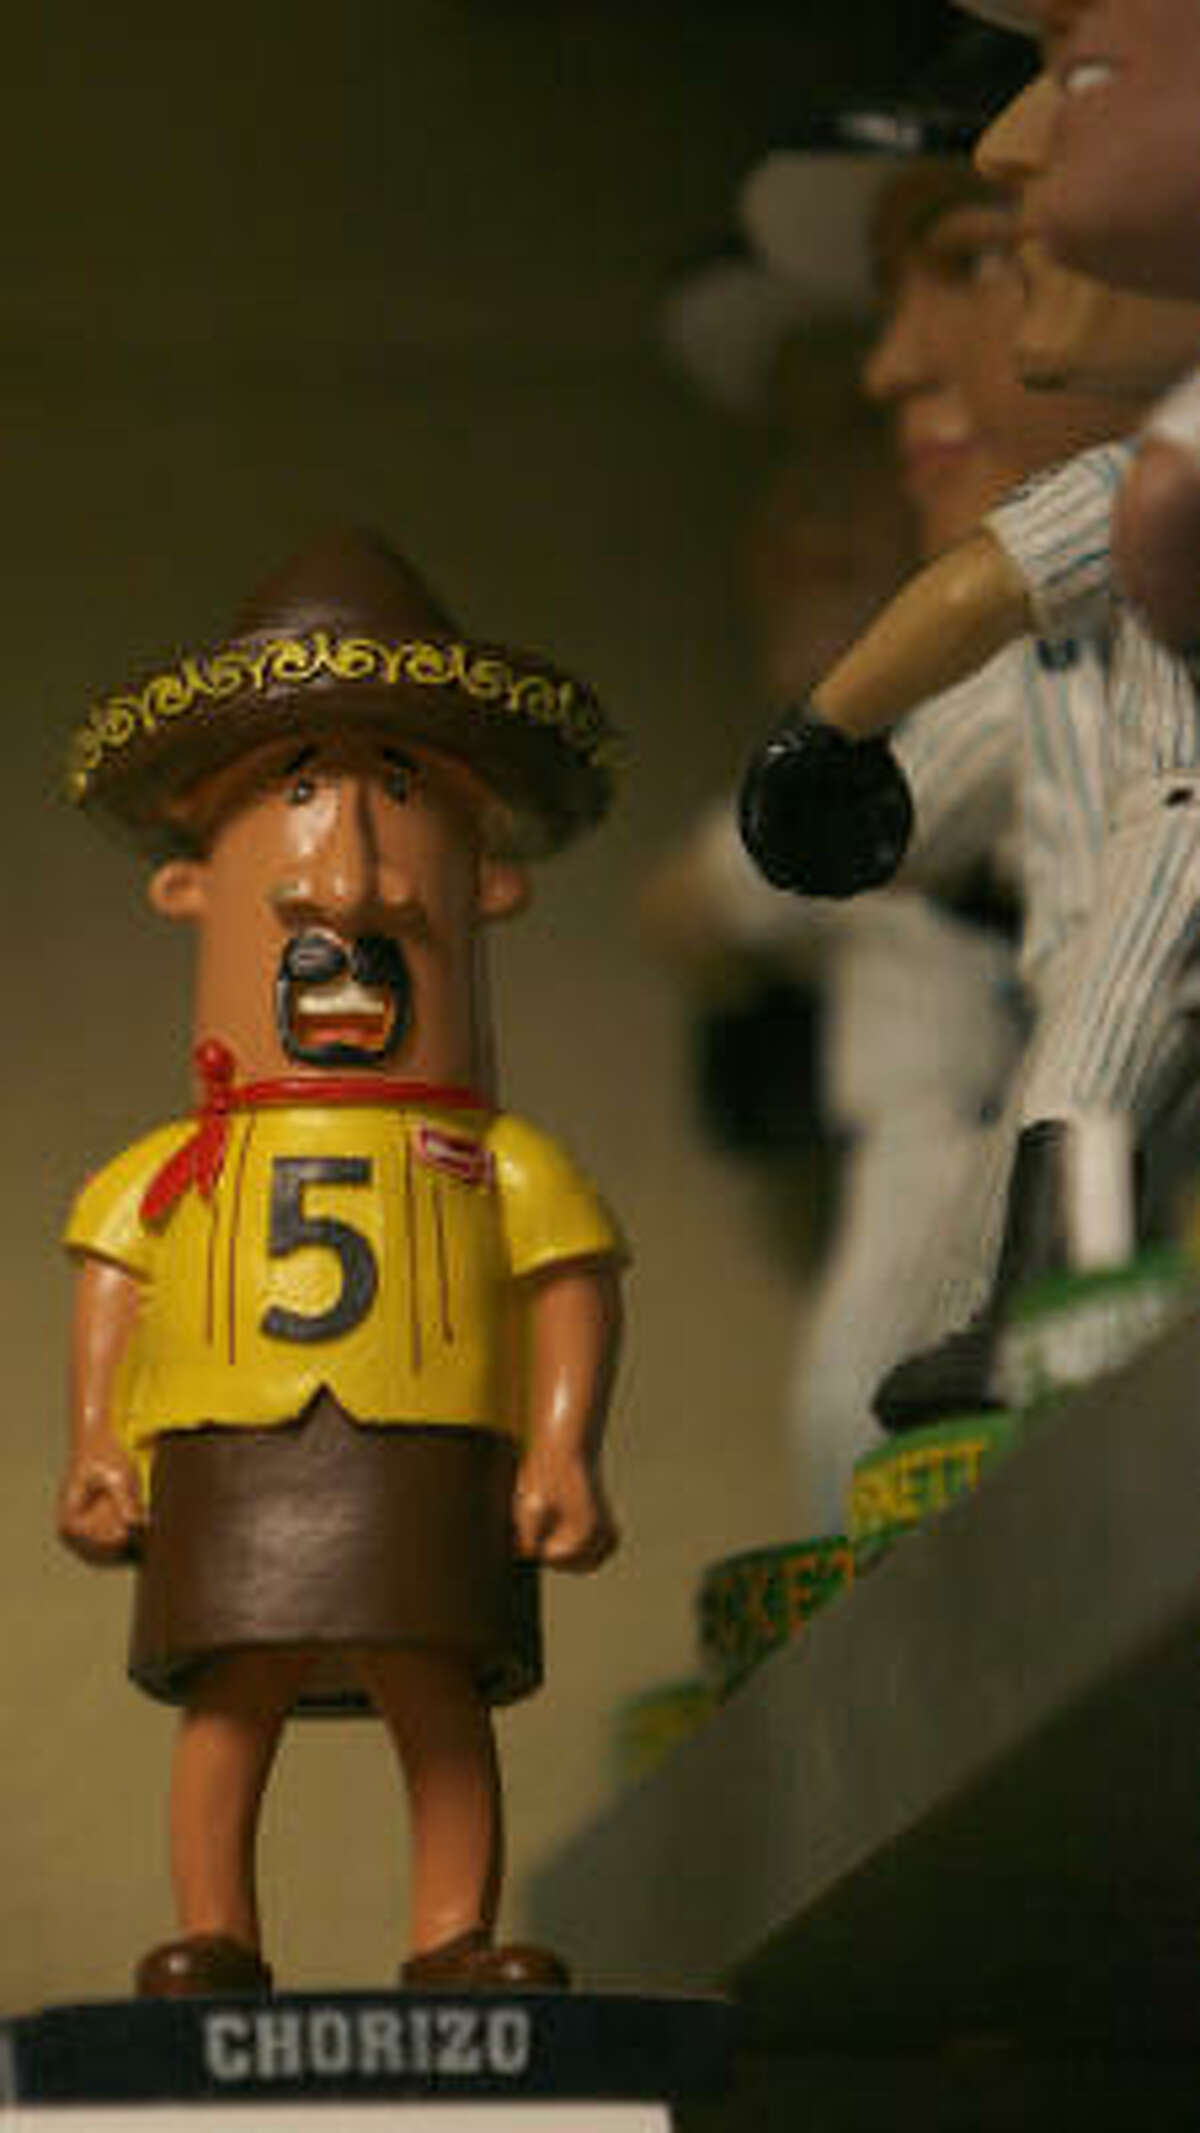 CHORIZO, SAUSAGE RACER OF THE MILWAUKEE BREWERSIt wouldn't creep you out if ... : Like the garlic head, you put it in your kitchen.